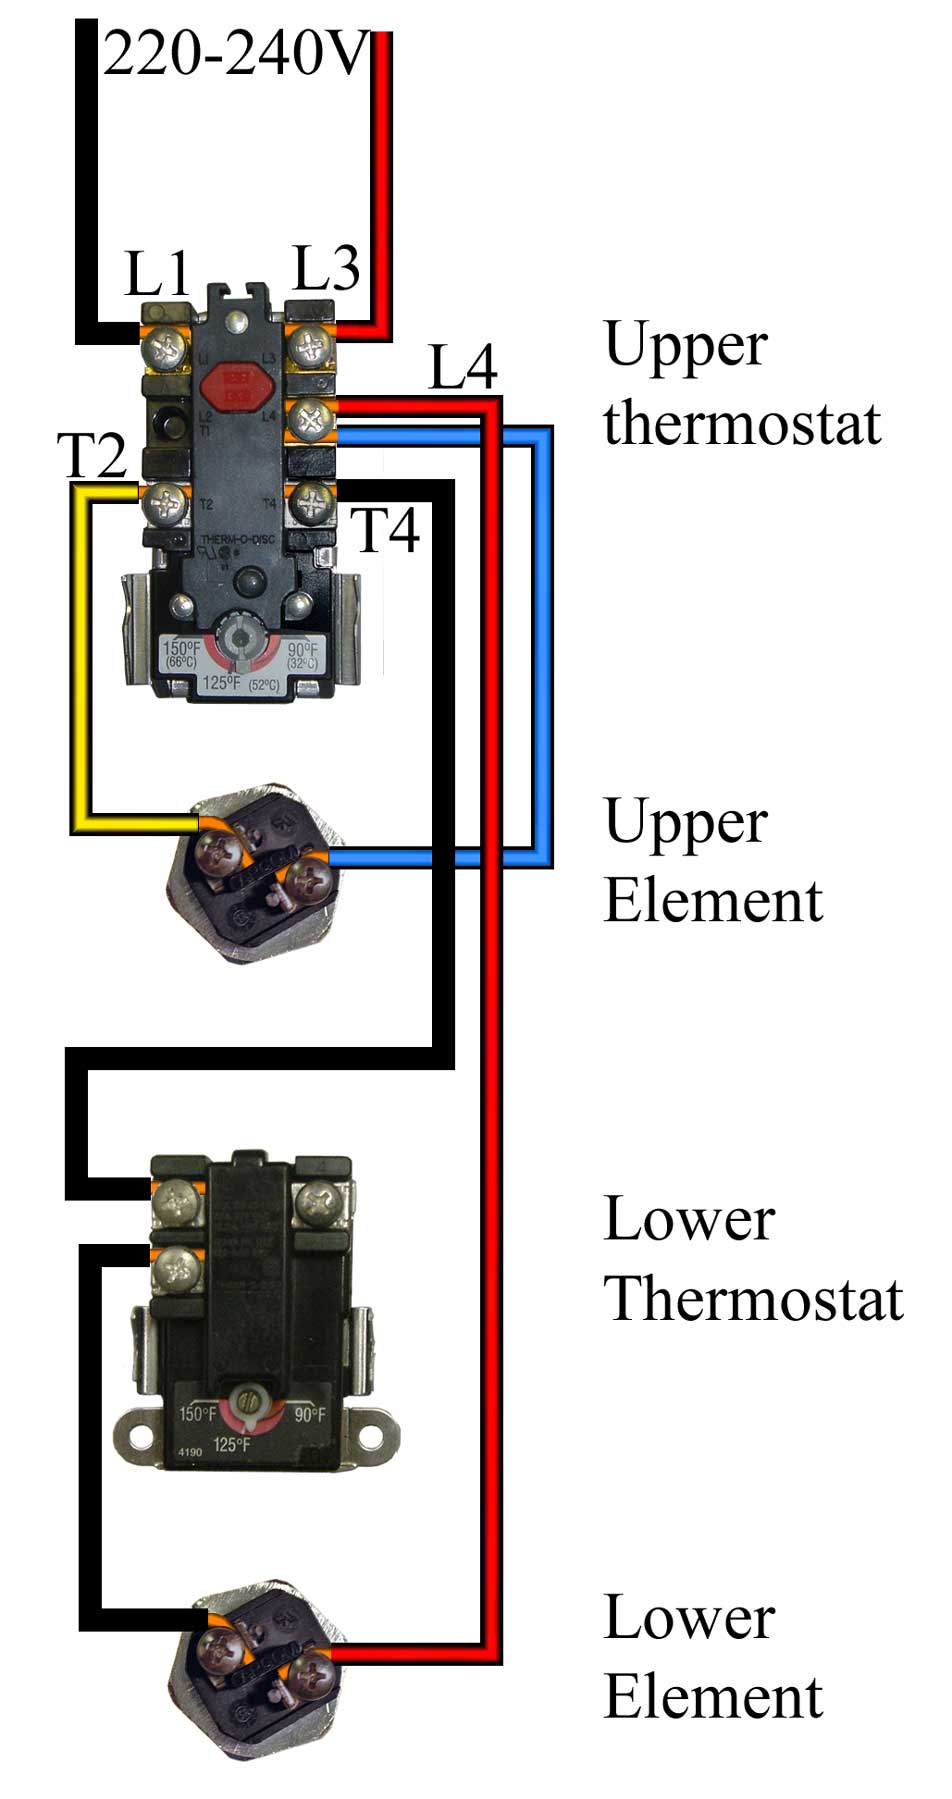 Water heater wiring w num10 how to wire water heater thermostat water heater wiring schematic at nearapp.co